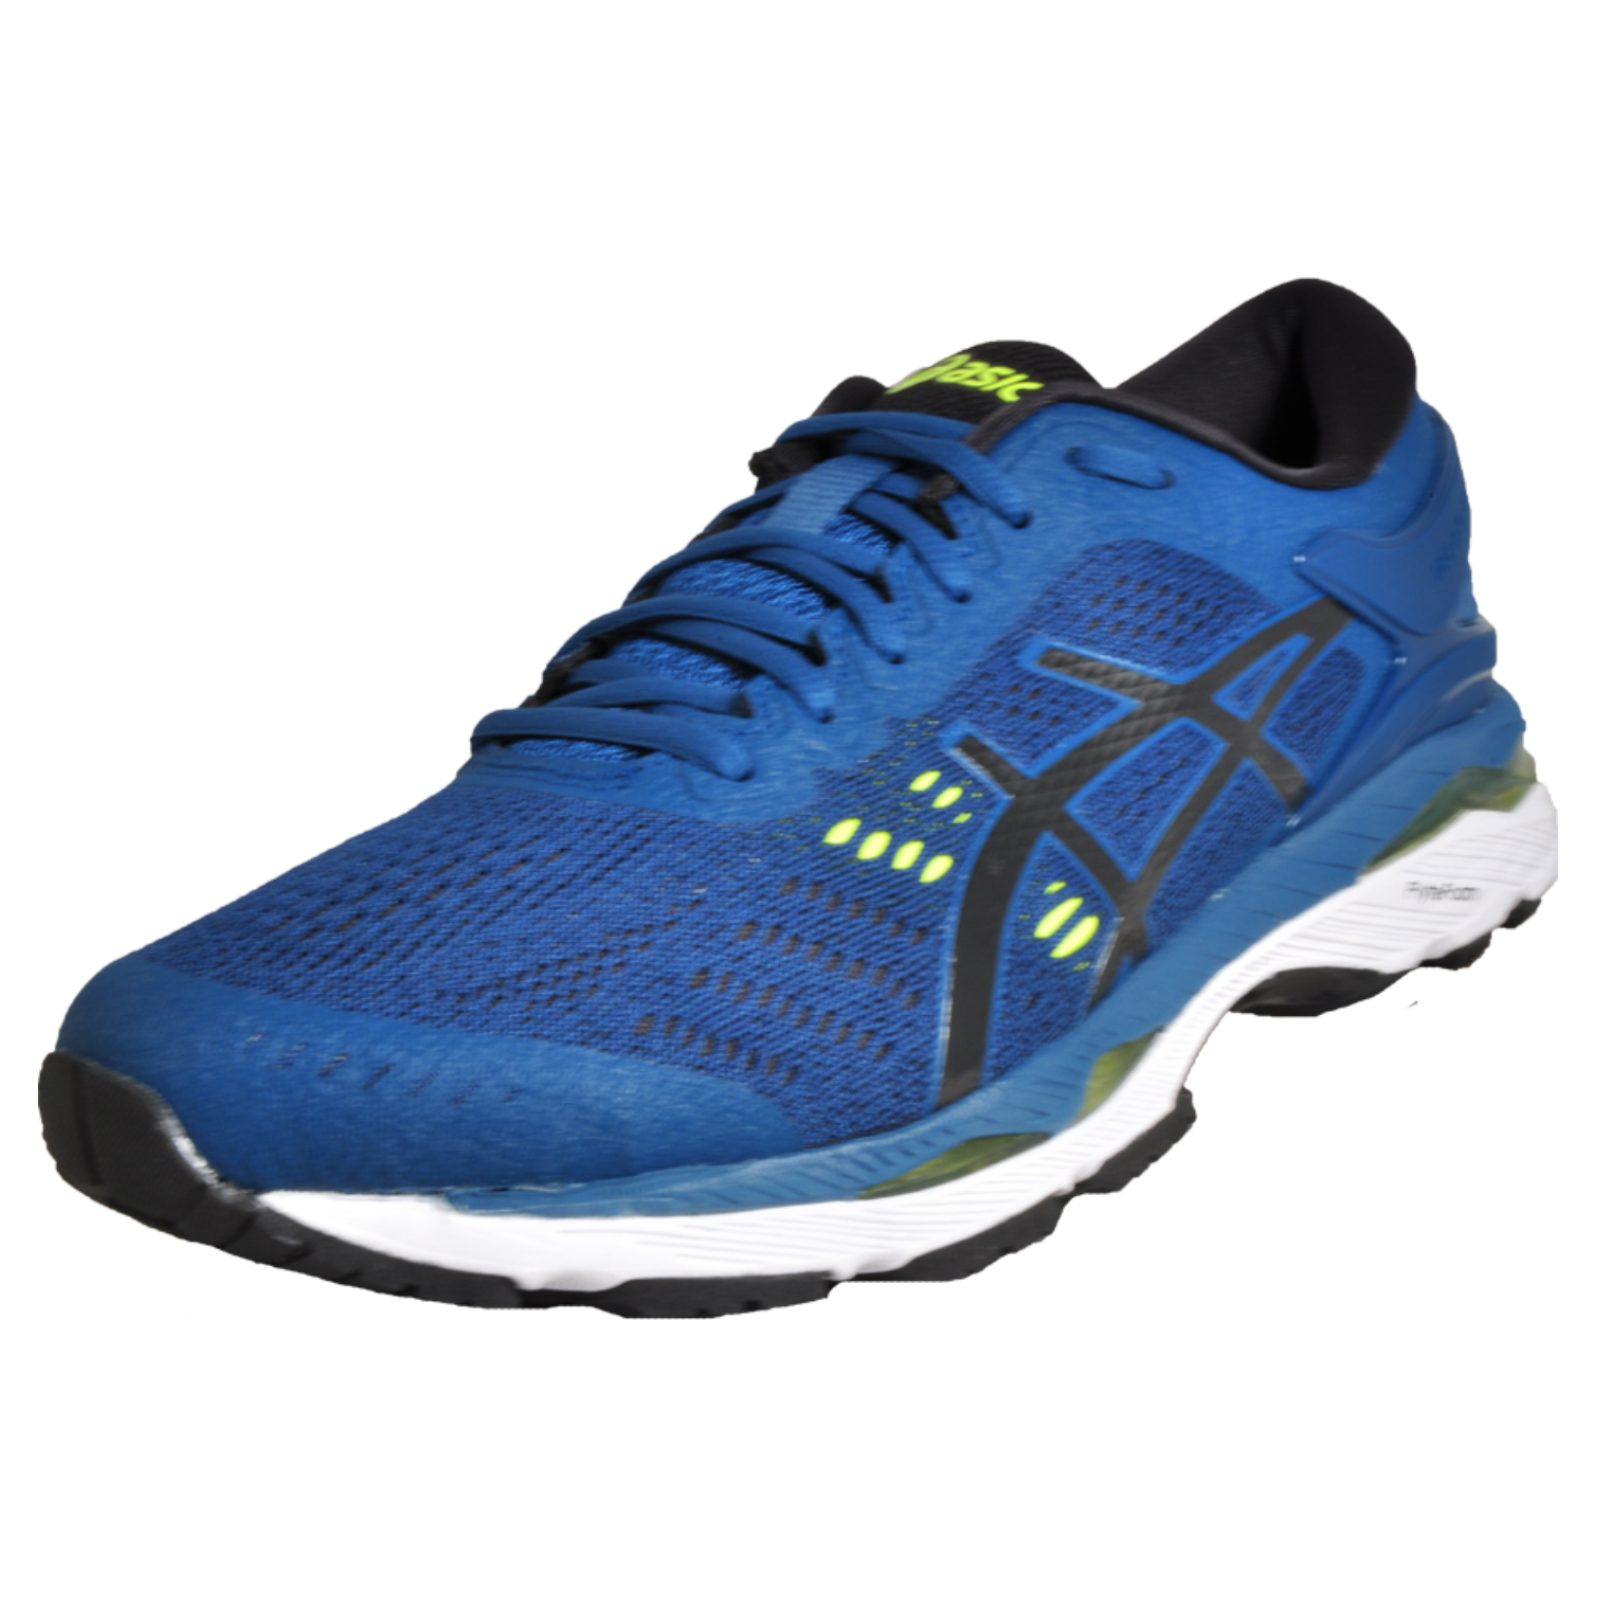 48be8f315c90 Details about Asics Gel Kayano 24 Men's Premium Running Shoes Performance  Trainers Blue